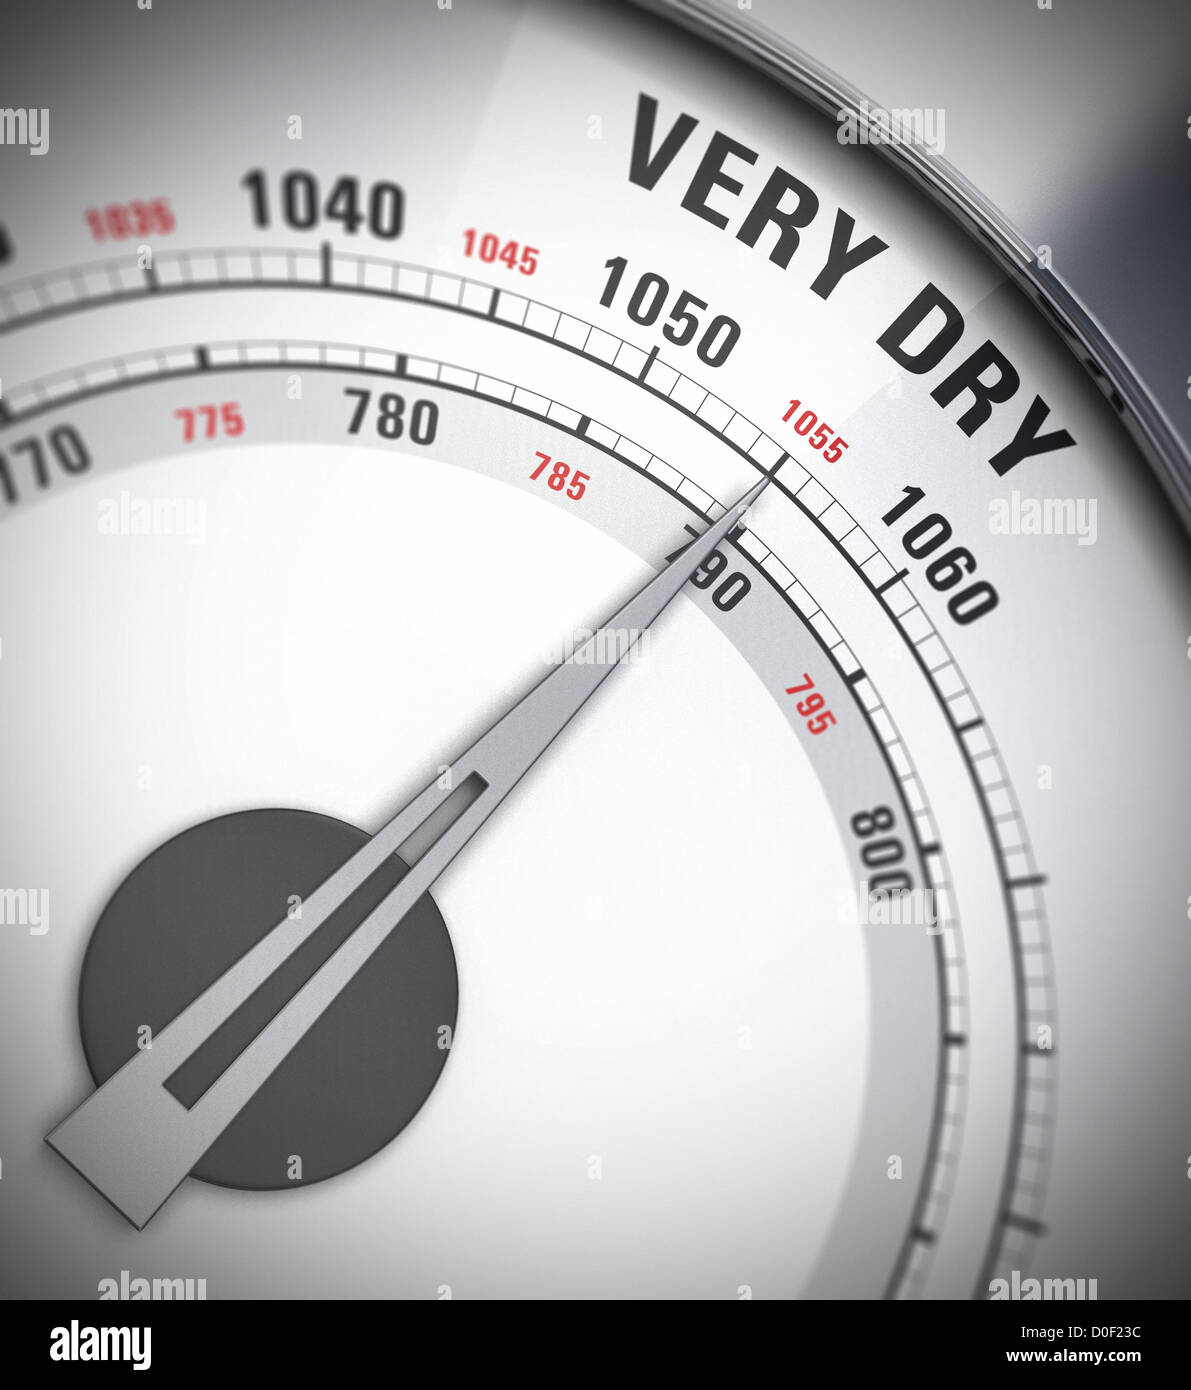 Atmospheric Pressure Stock Photos How To Build Electronic Torricelli Barometer Close Up Of A With The Pointer Pointing On Word Very Dry Blur